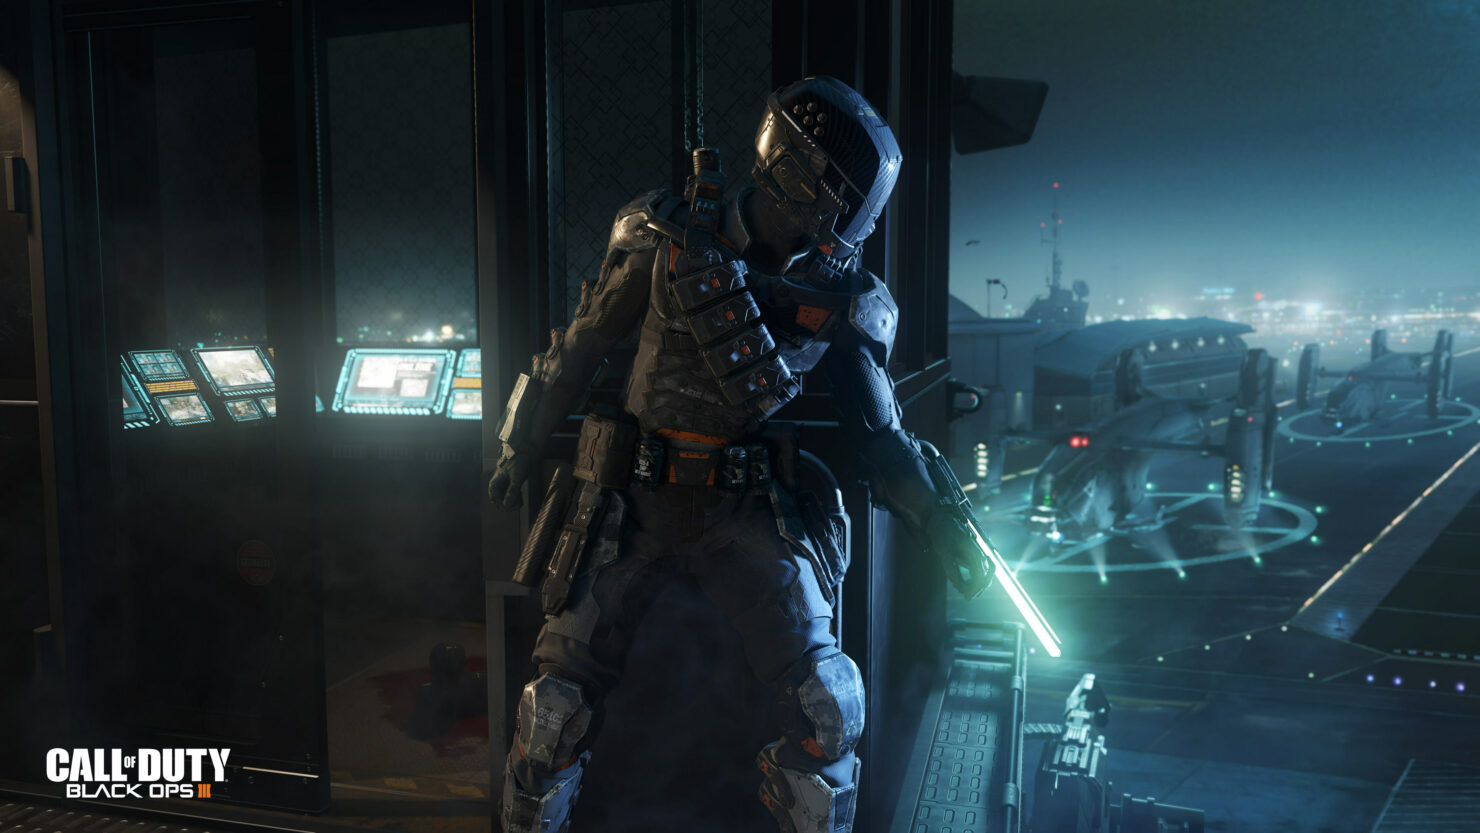 Call of Duty Black Ops 3 modding